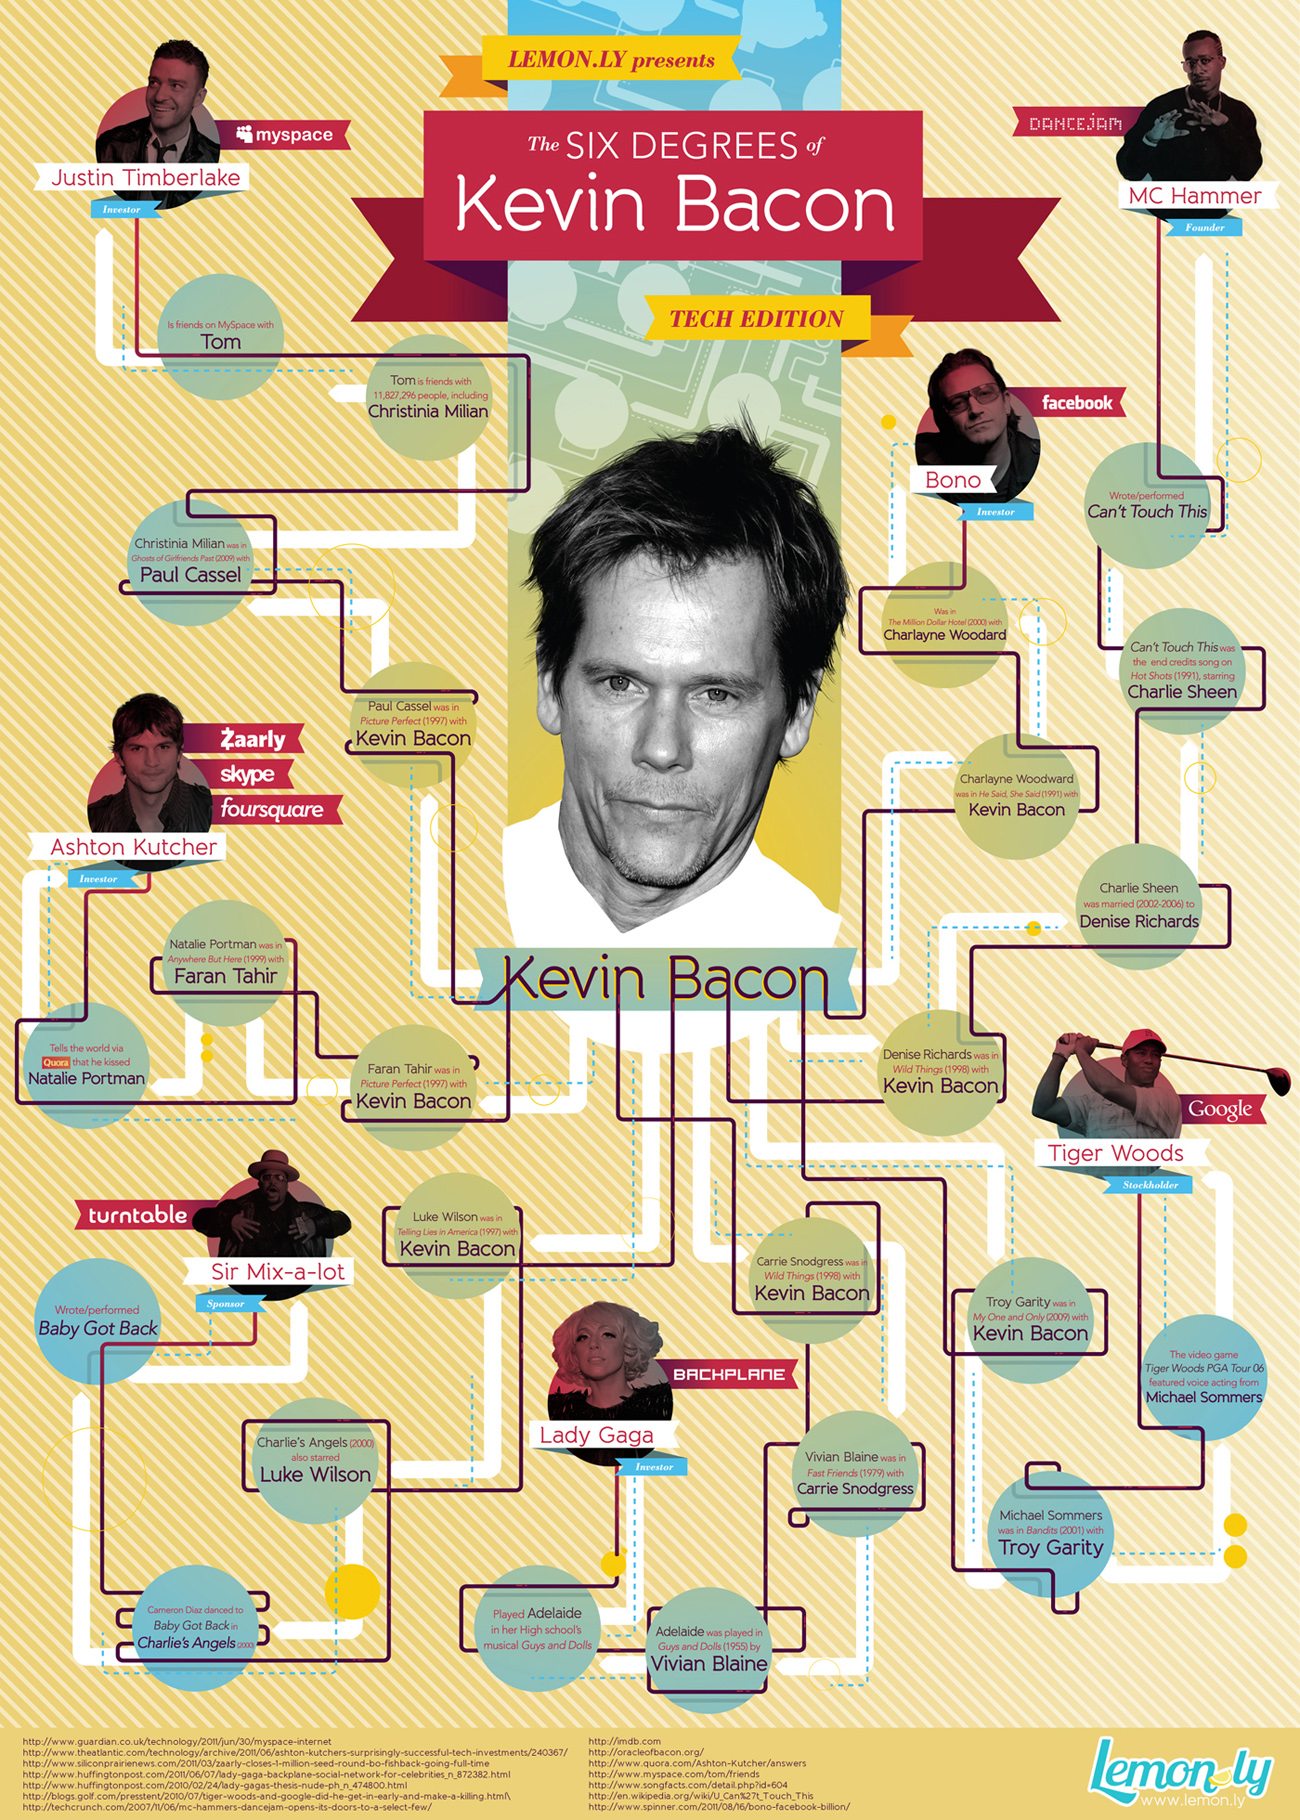 6 Of Pentacles As Advice: 6 Degrees Of Kevin Bacon Tech Edition